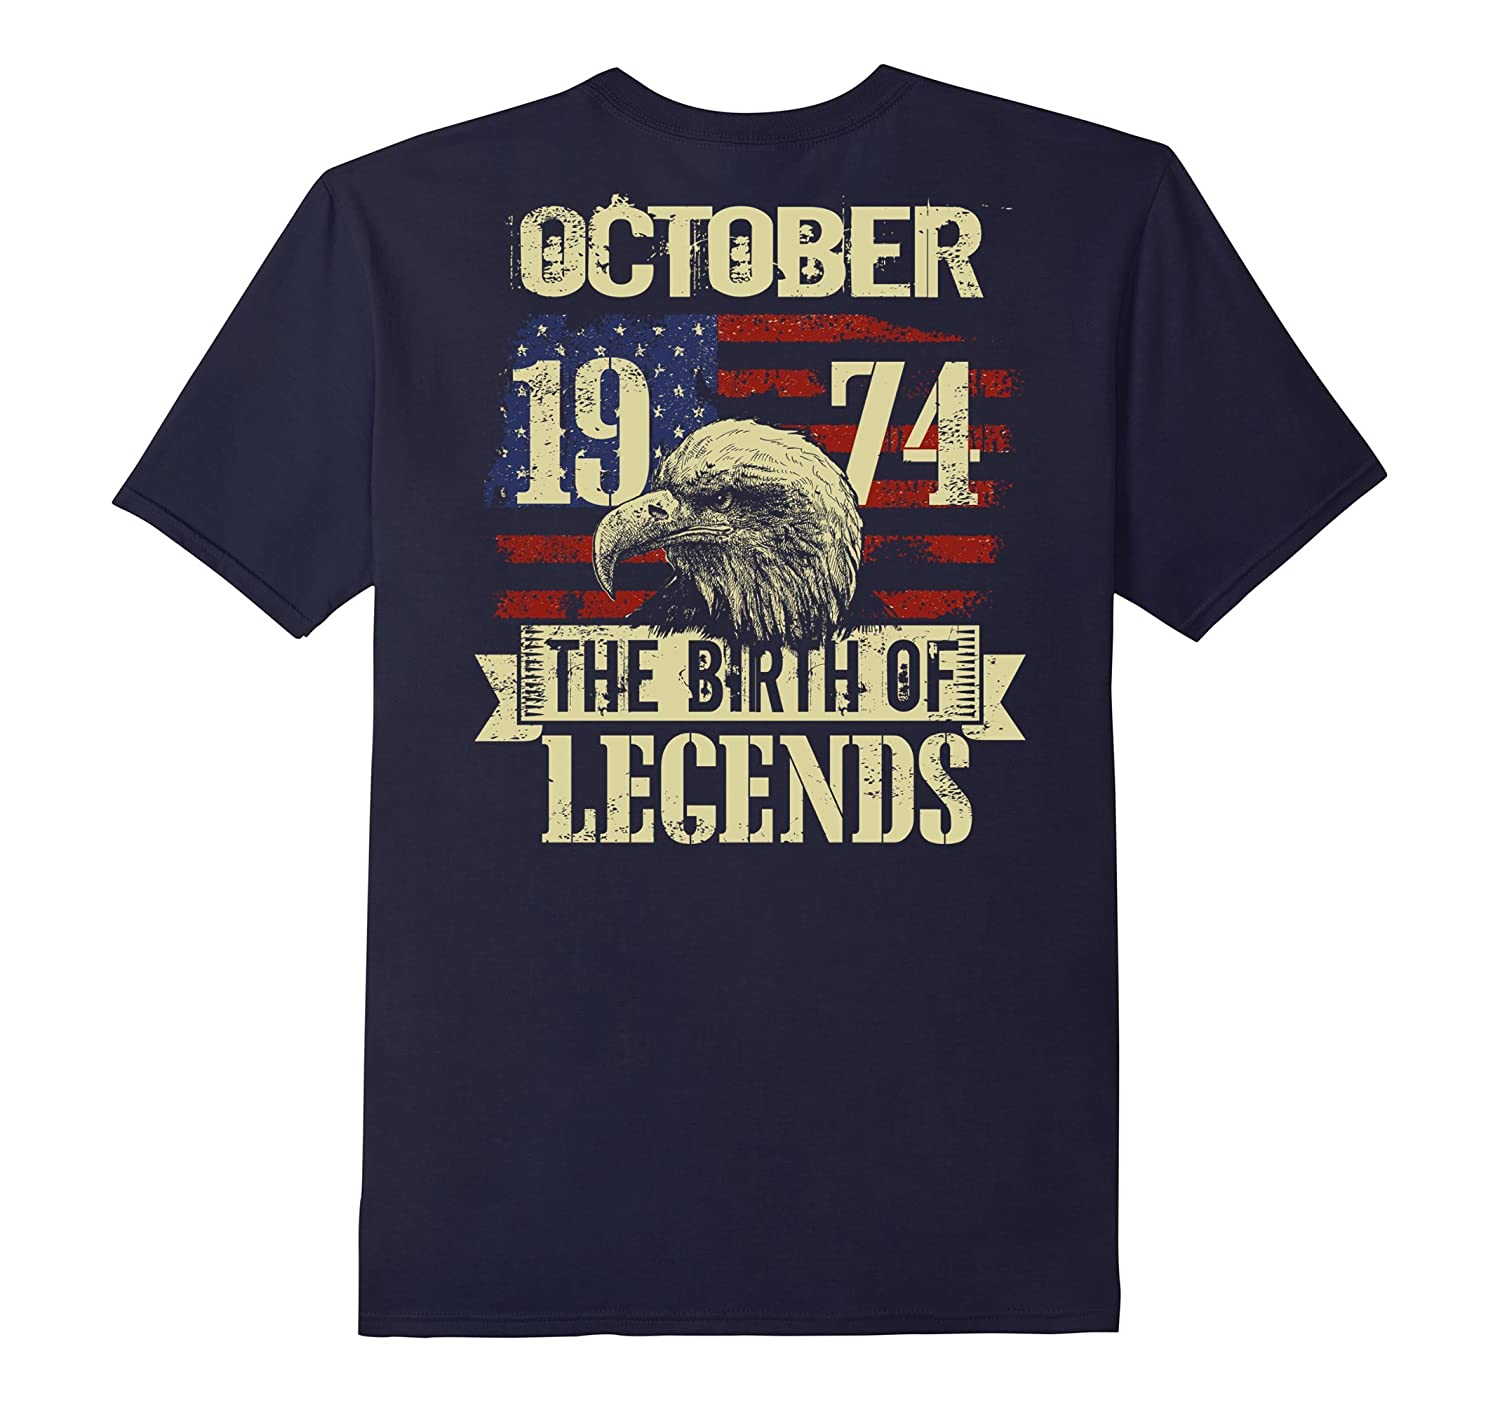 1974 OCTOBER OCT The Birth Of Legends 43 Years Old Backside-FL